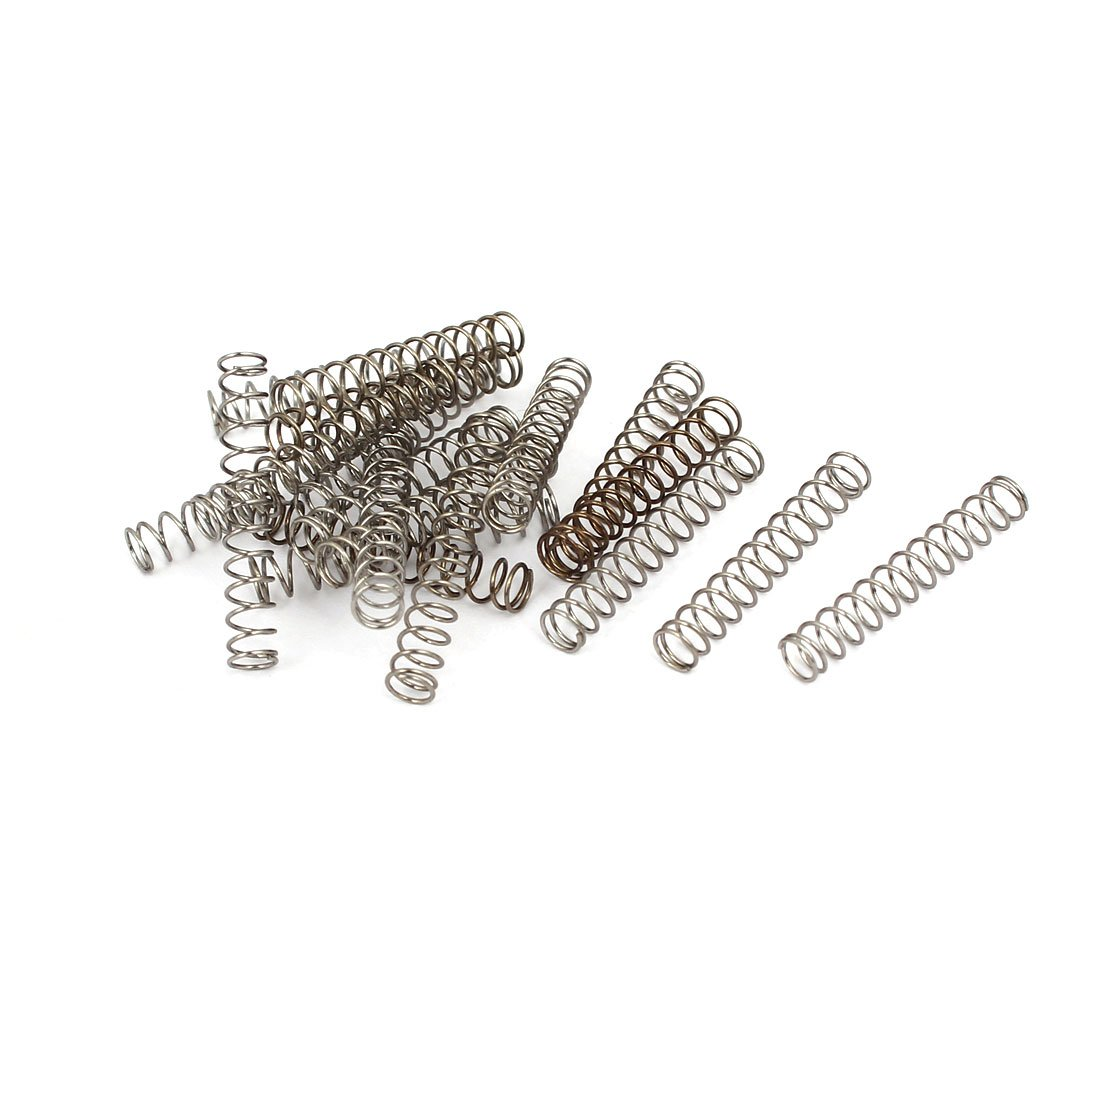 uxcell 0.4mmx4mmx25mm 304 Stainless Steel Compression Springs 20pcs